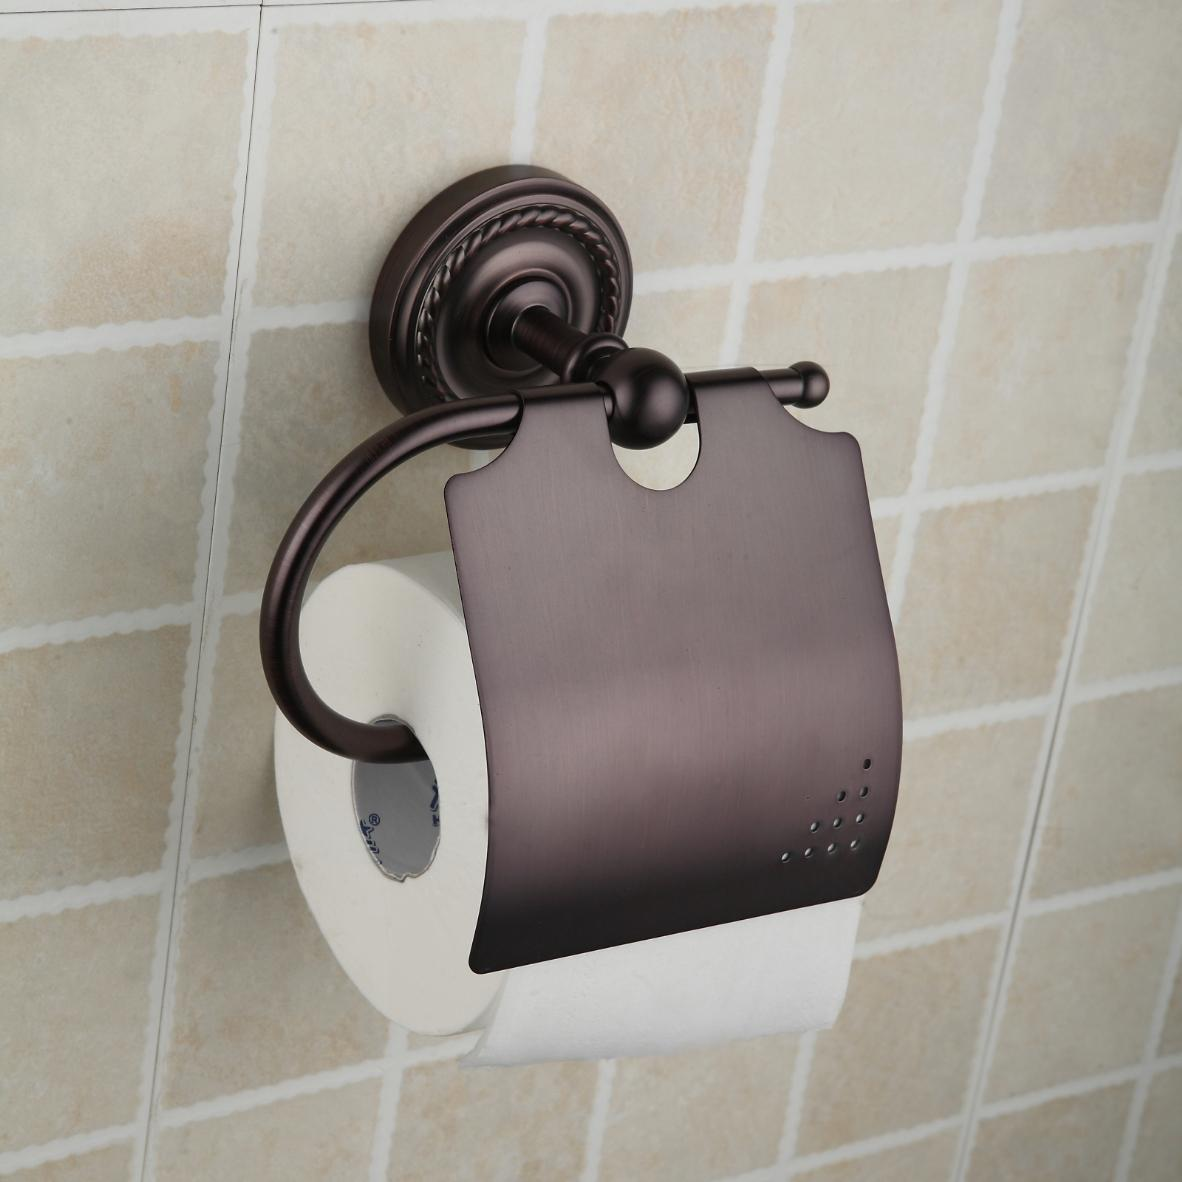 Oil Rubbed Broneze Wall-mounted Toilet Roll Holder ORB1010